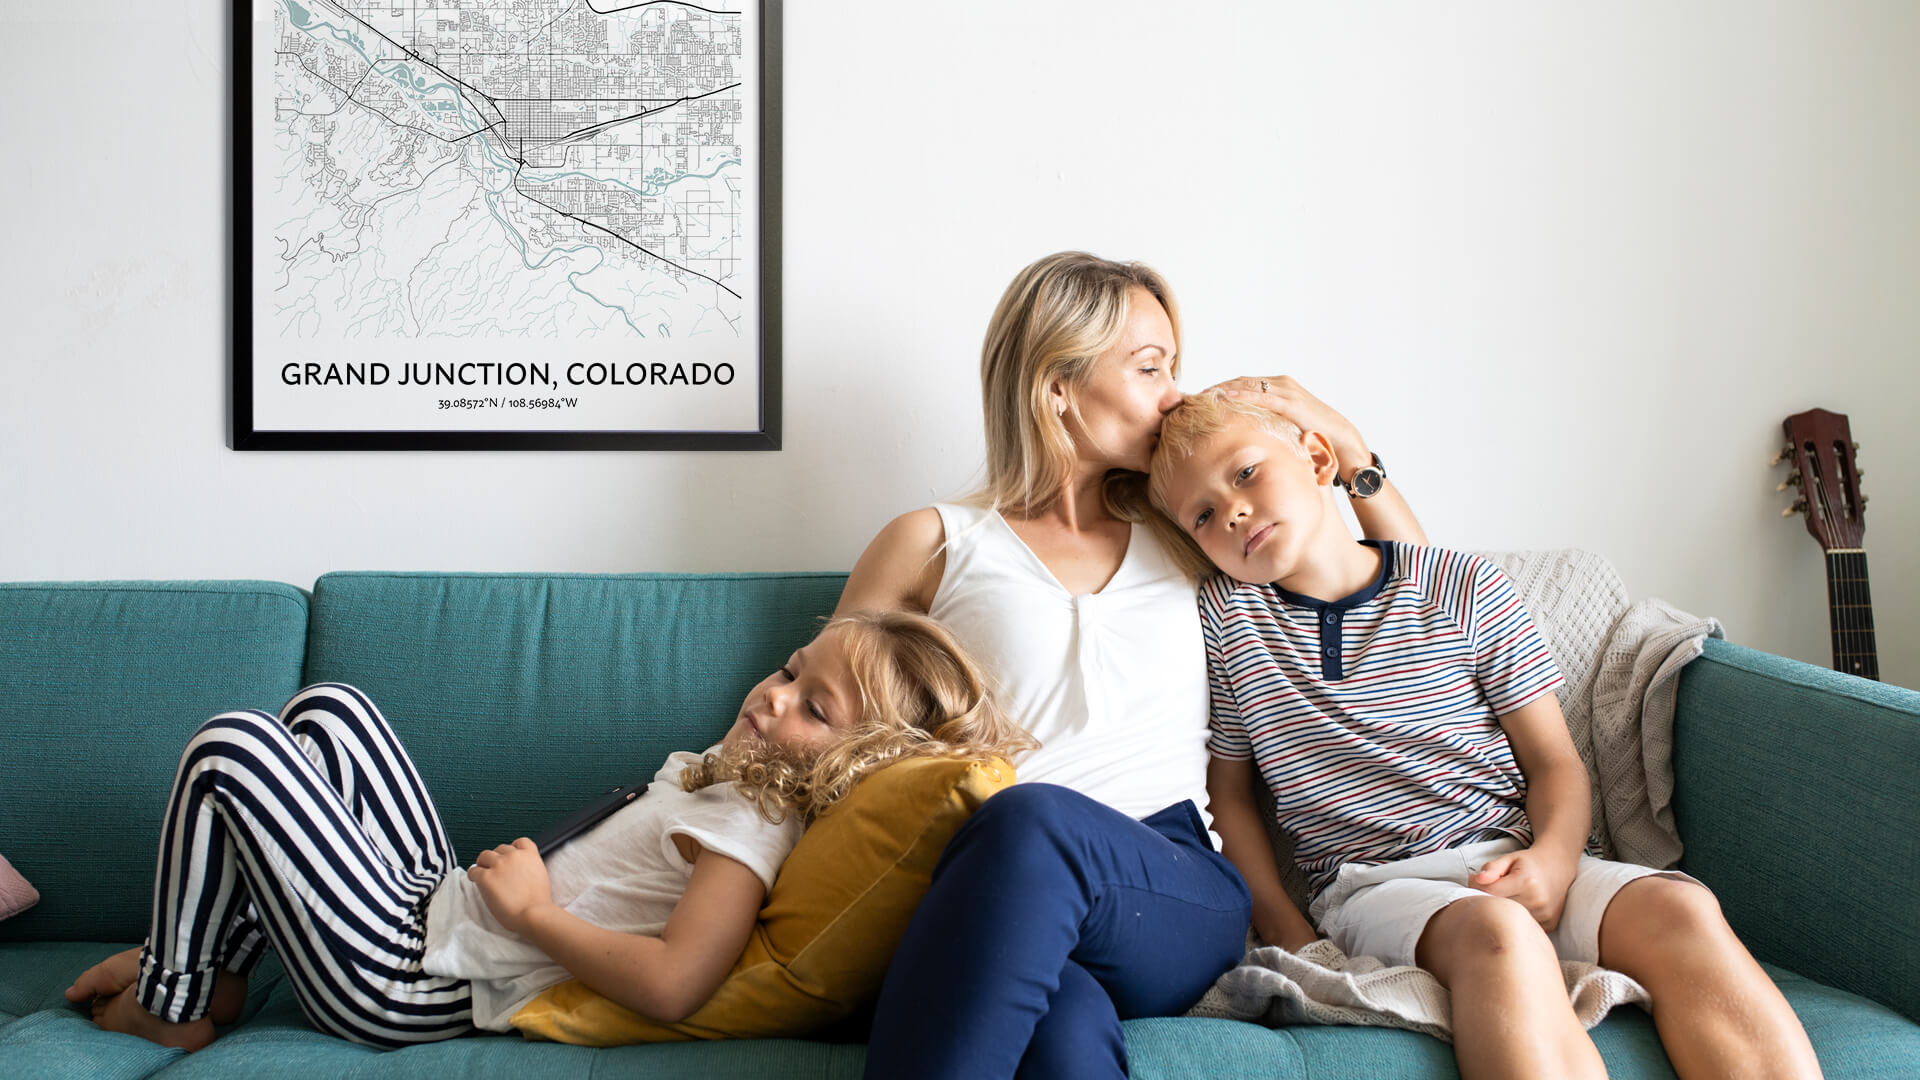 Grand Junction map poster